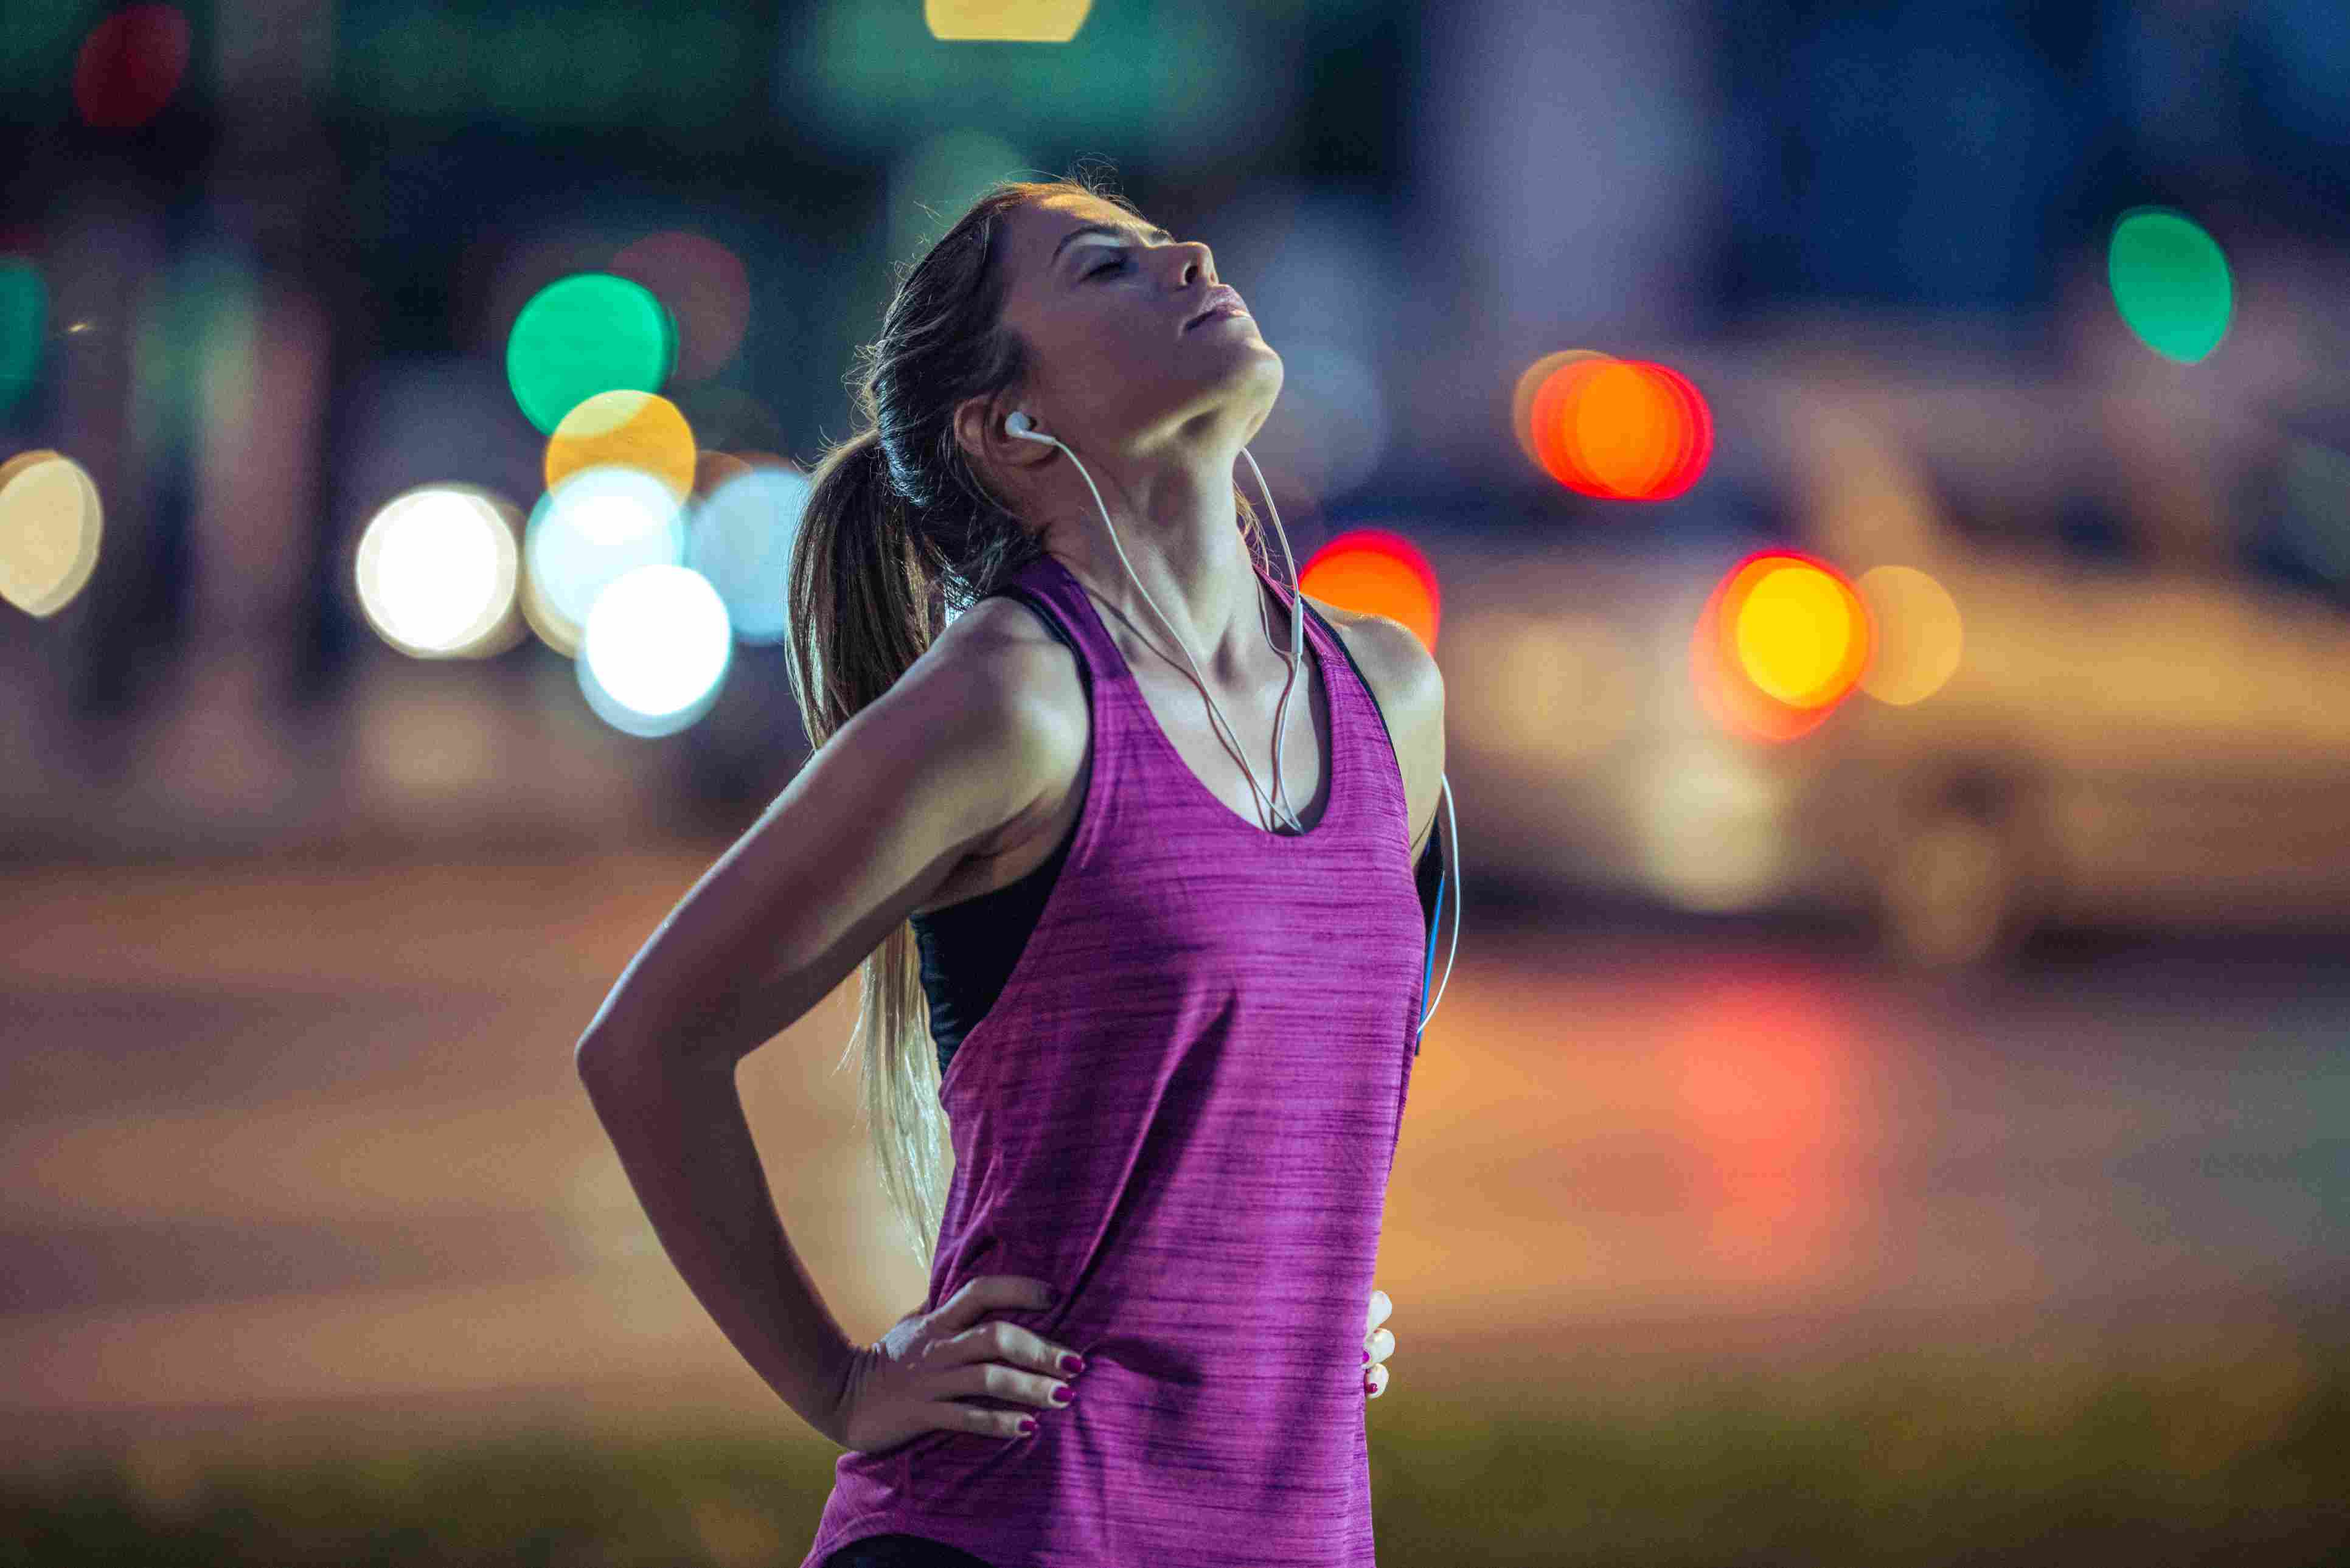 A woman catching her breath after a run, night scene